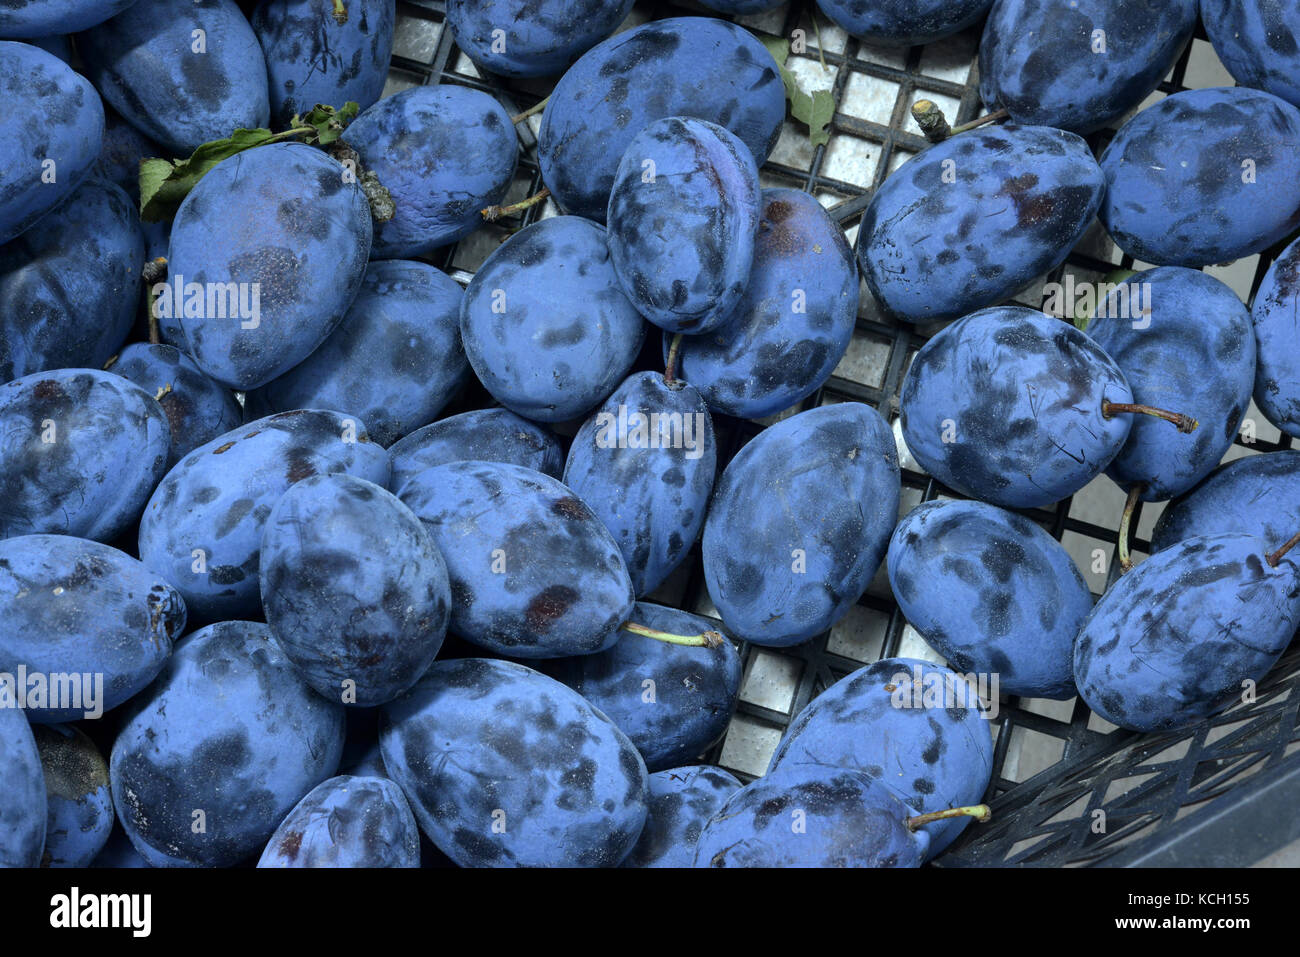 Fresh Ripe Plums or Blackthorns , top view of juicy natural plums with , high quality resolution image - Stock Image